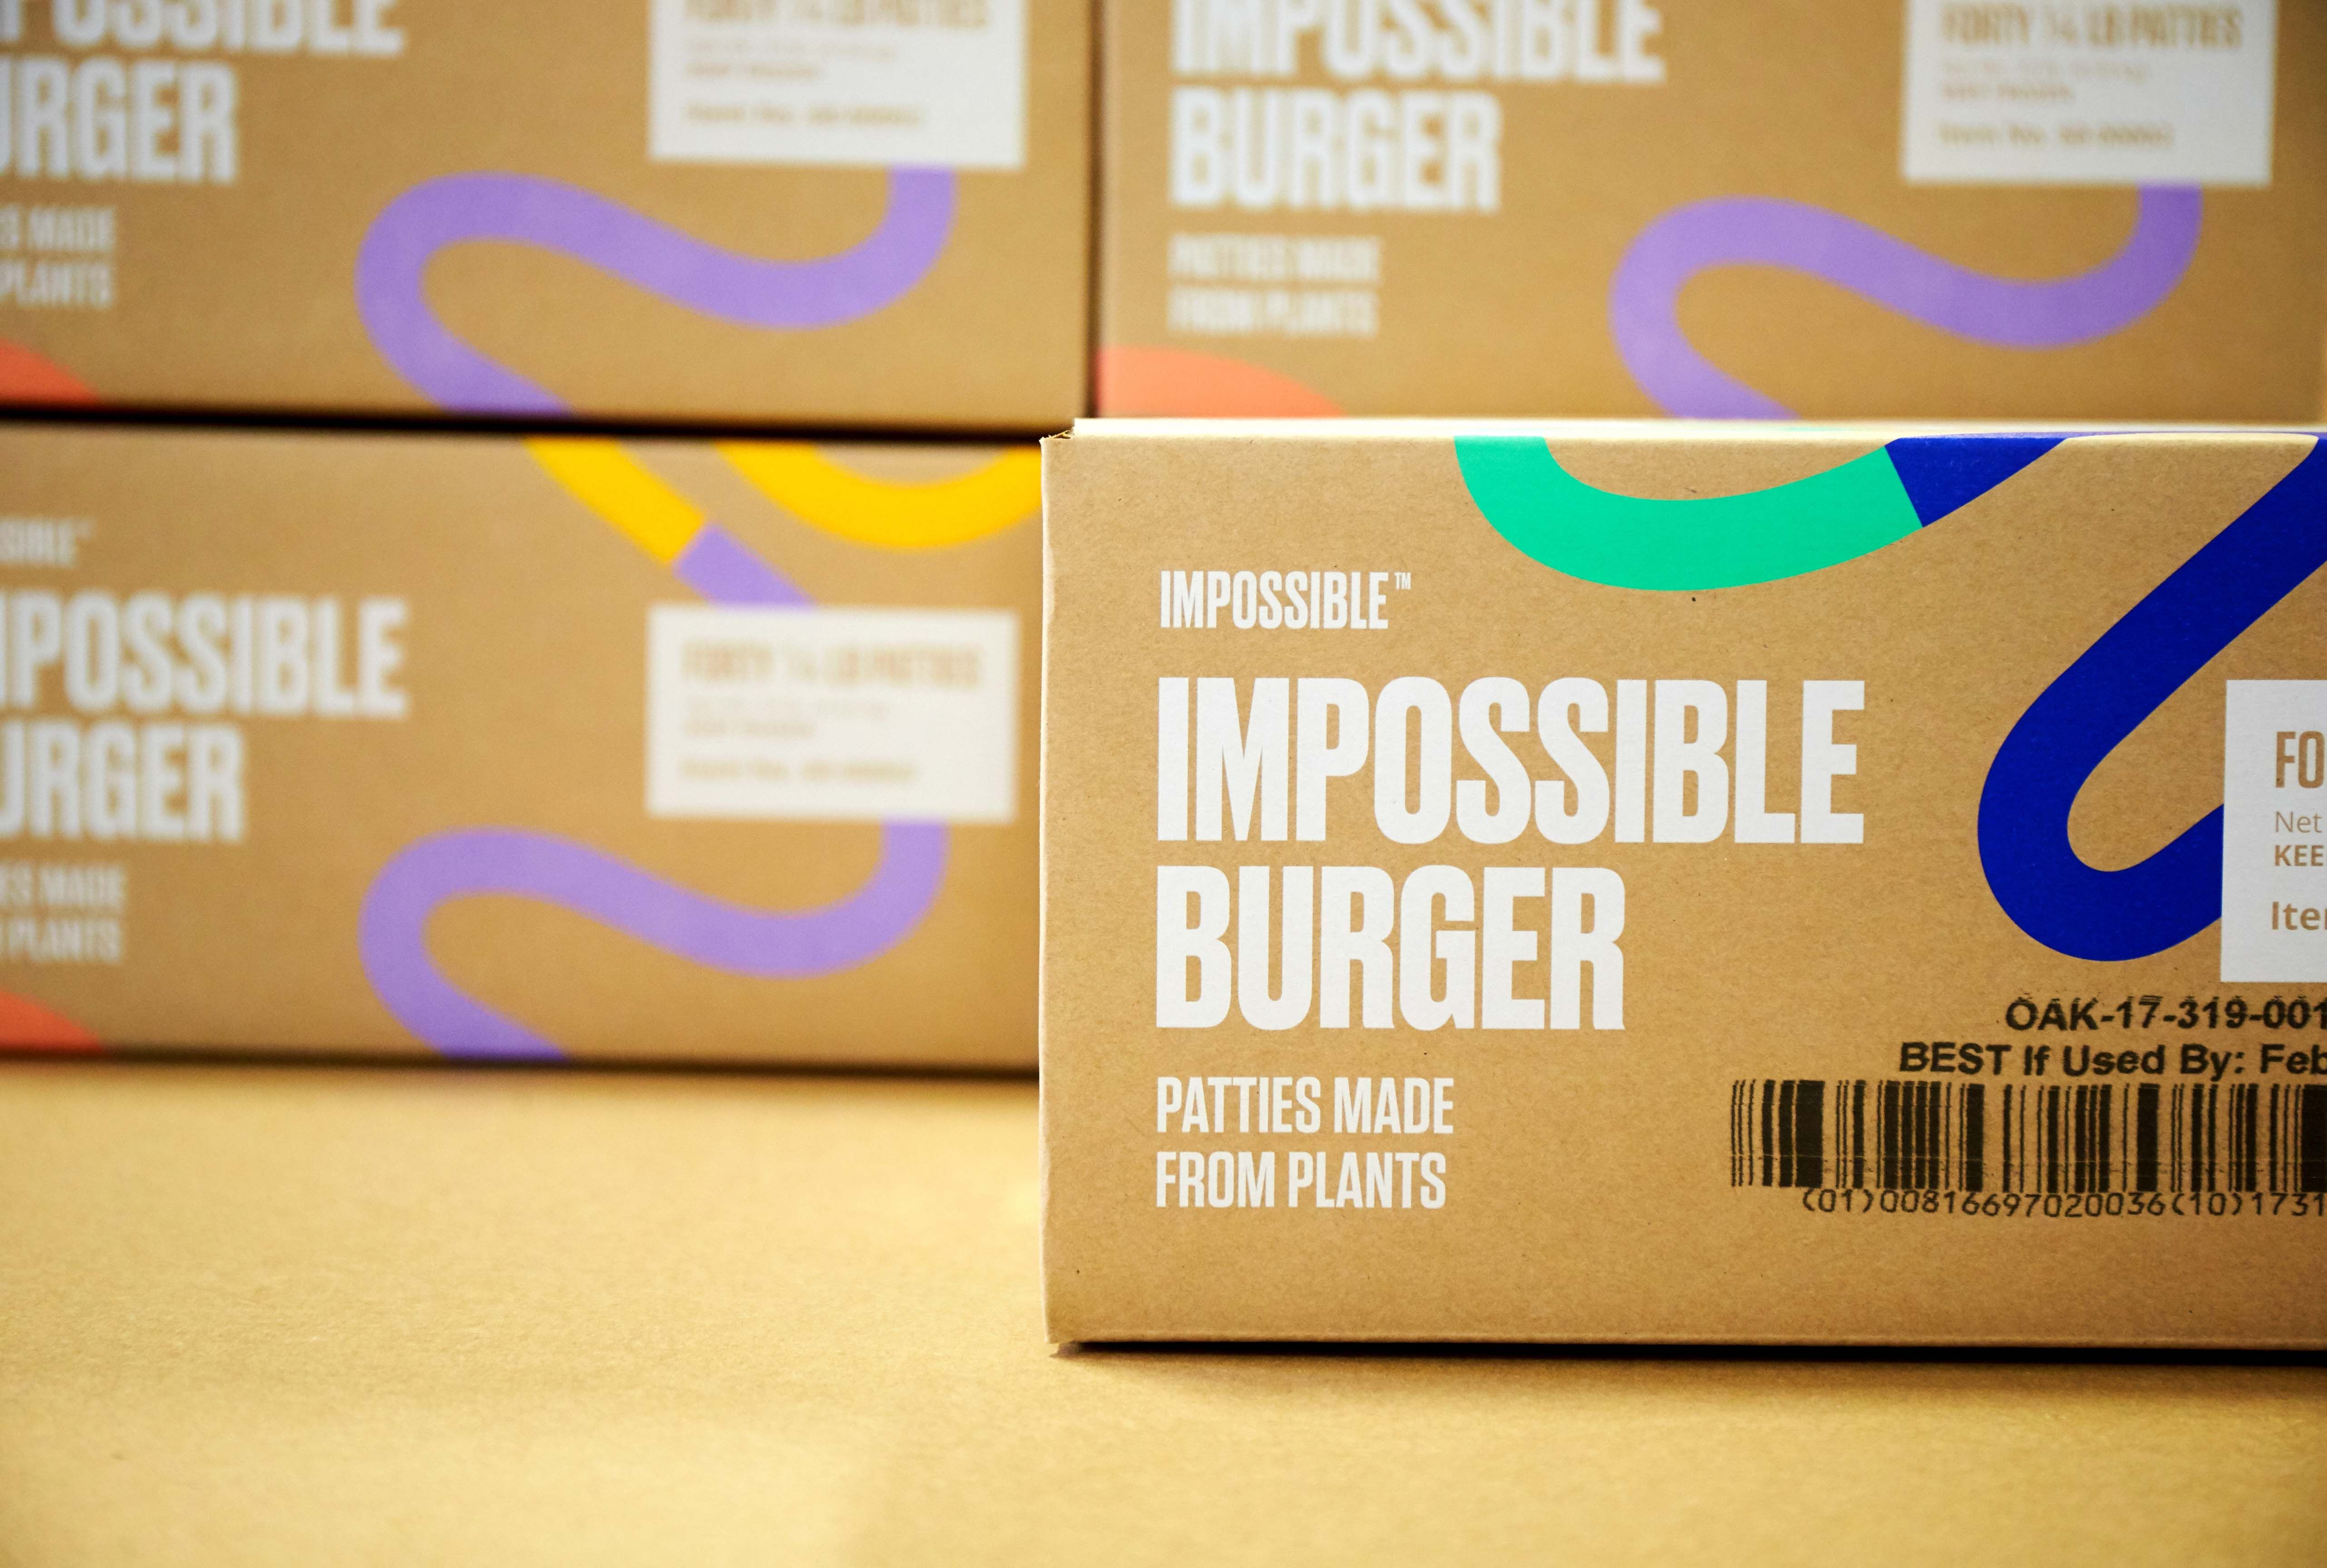 You Can Now Buy Impossible Burgers At Grocery Stores